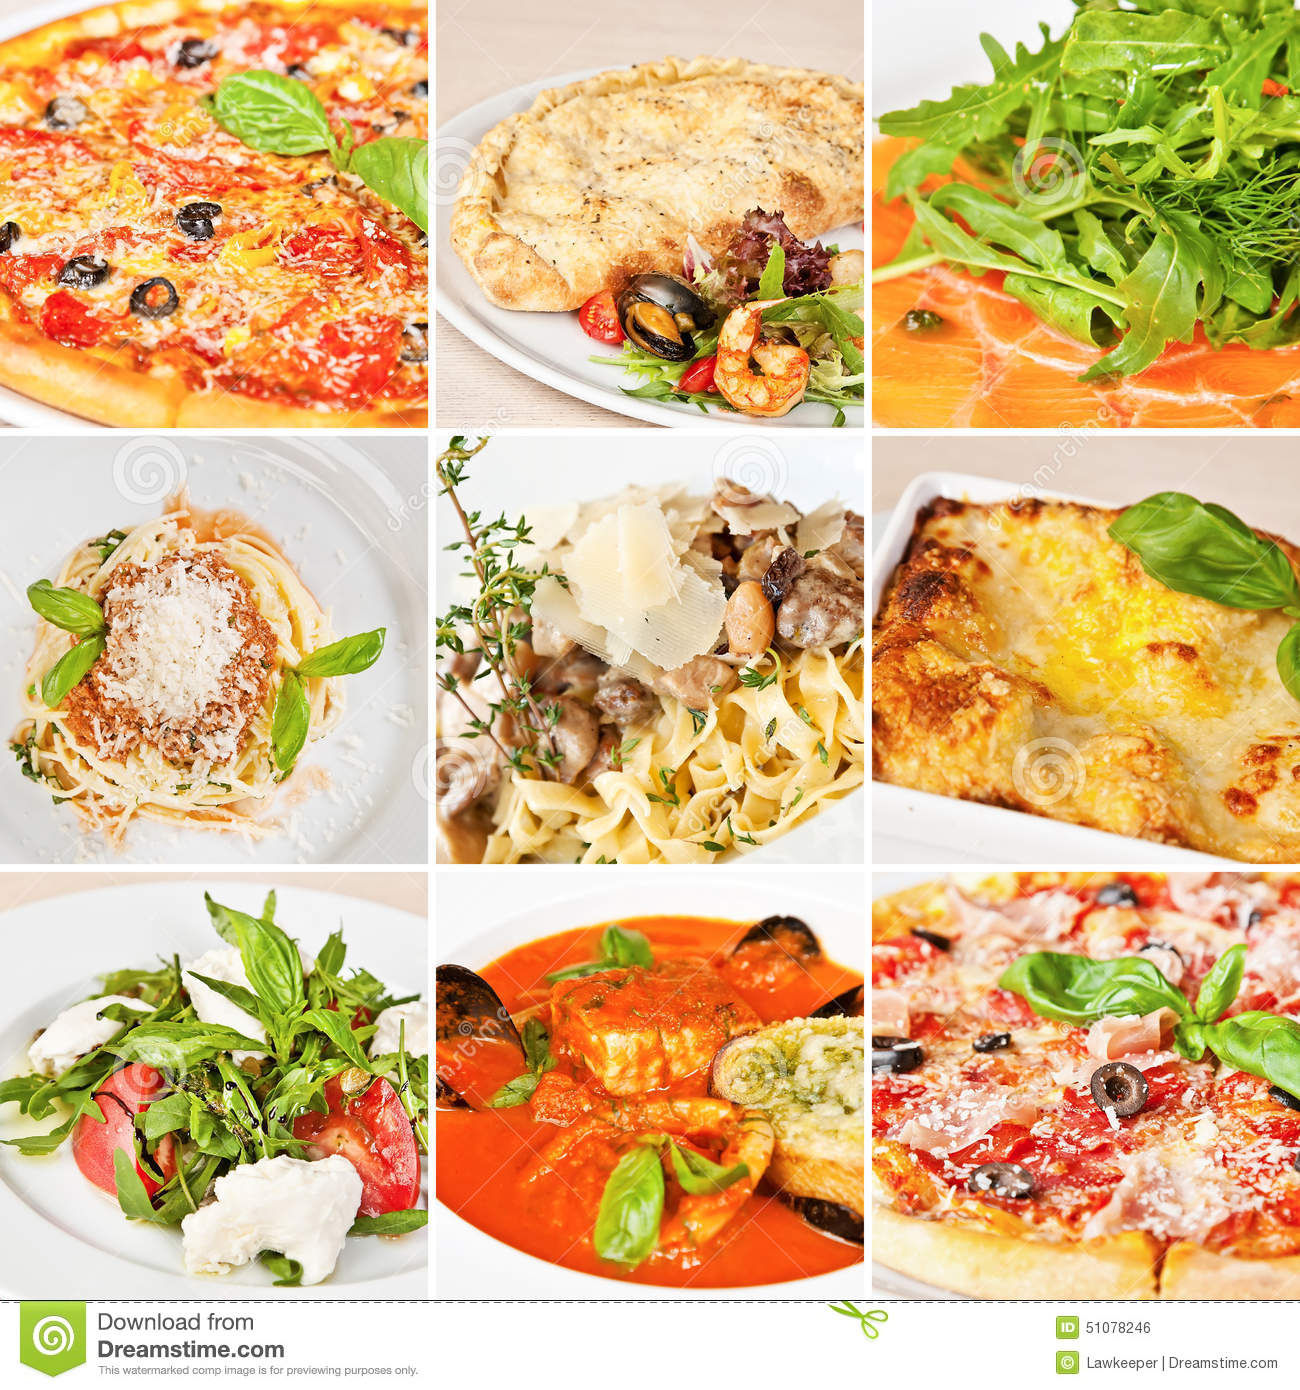 Italian Food Collage Stock Photo - Image: 51078246